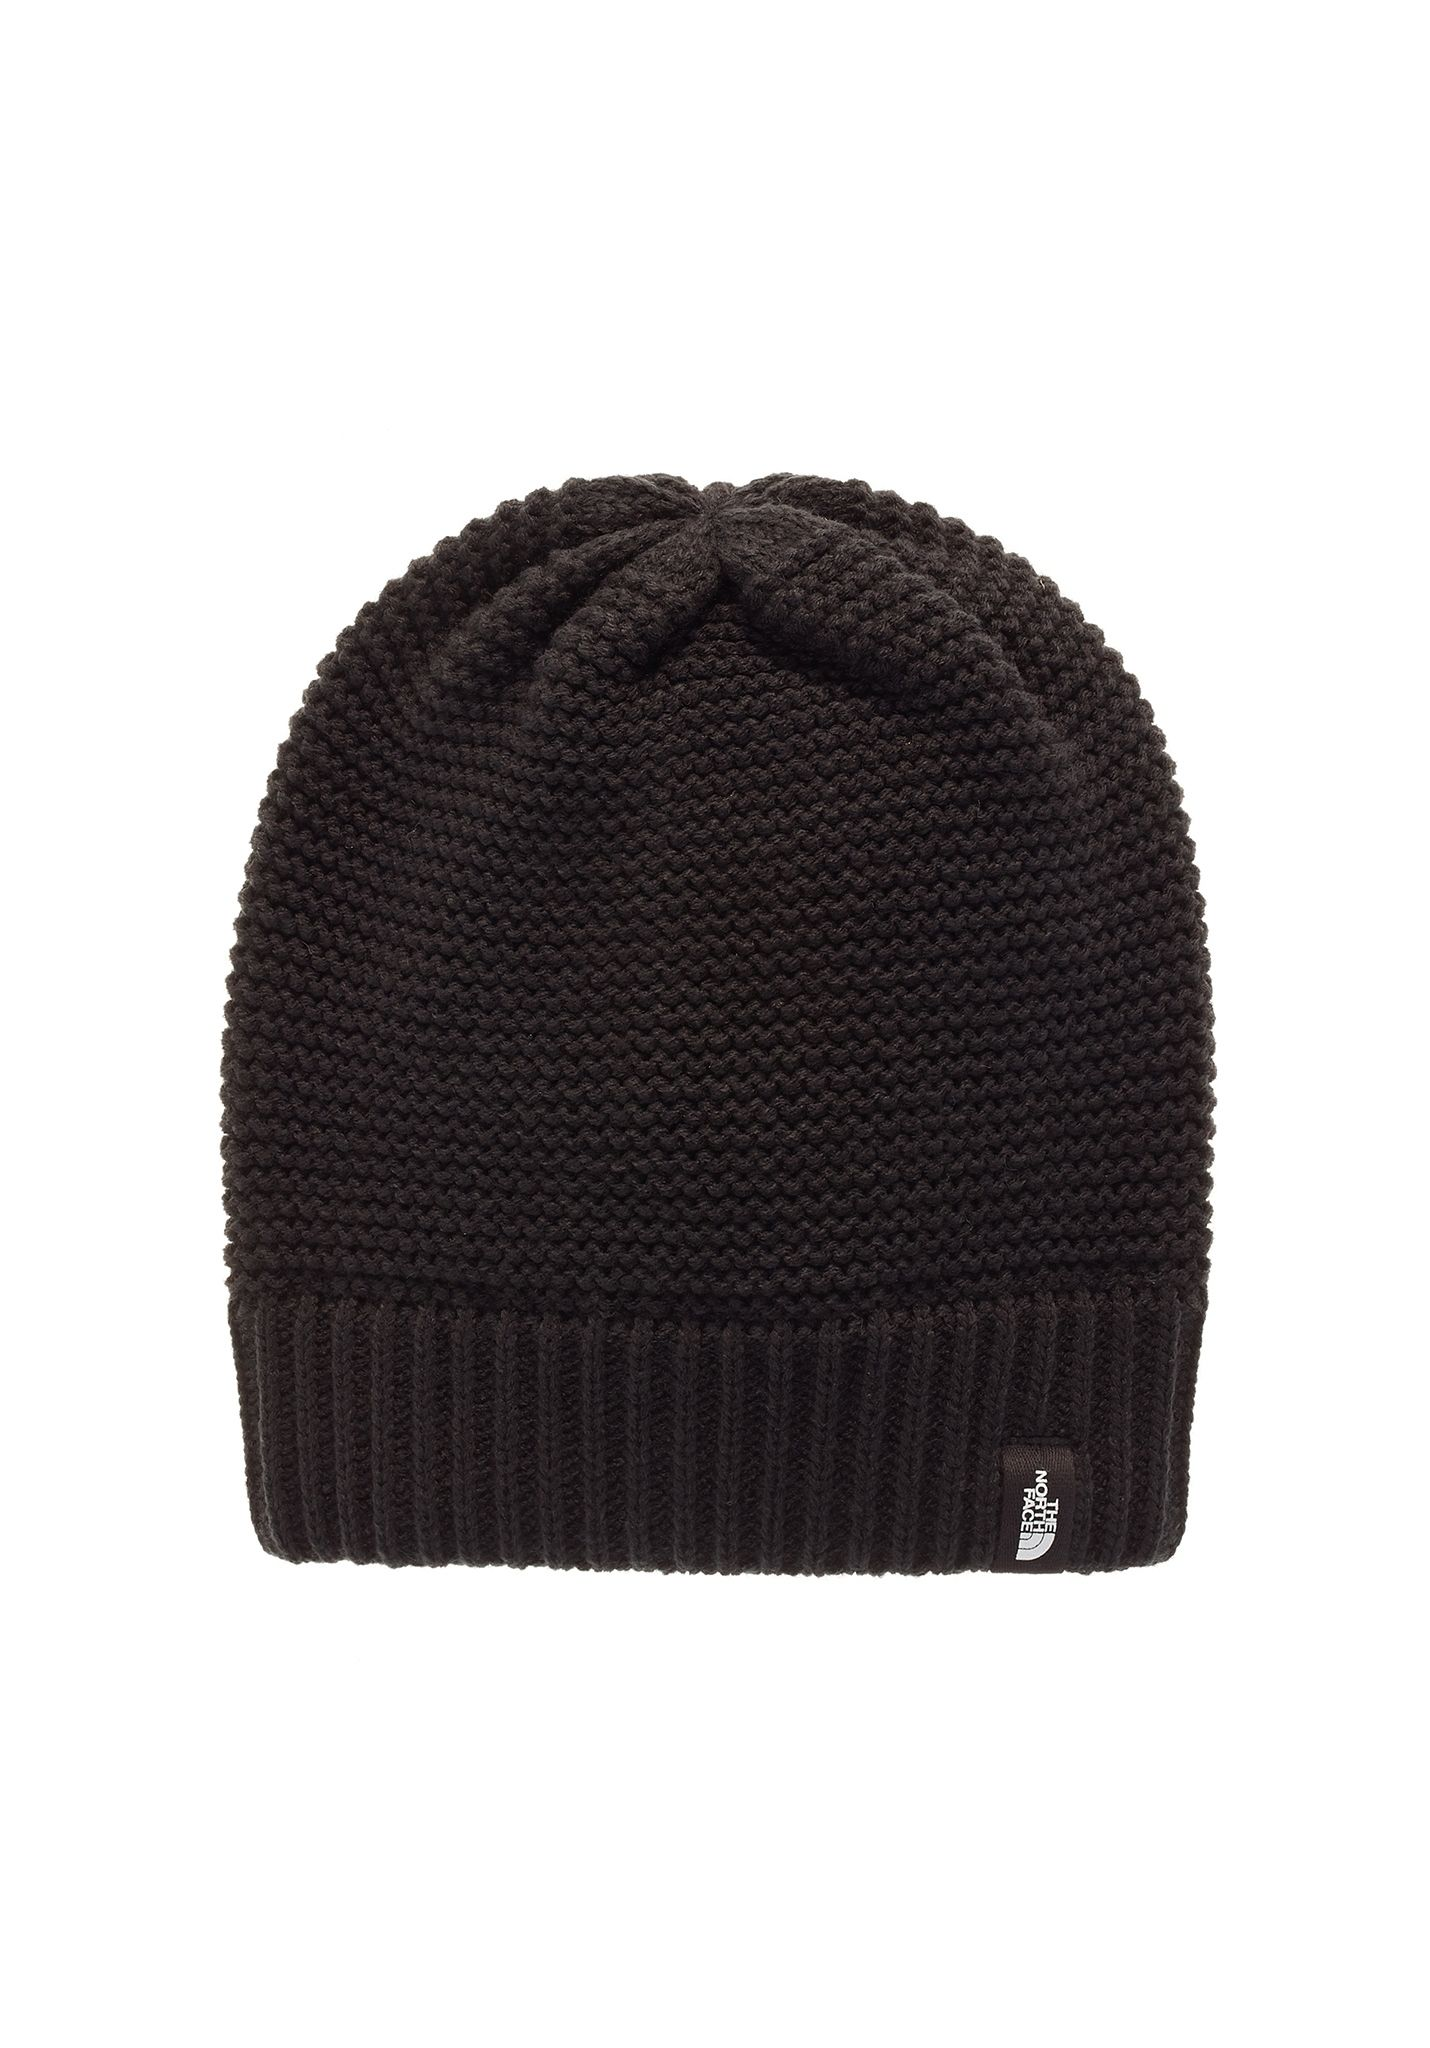 4ad4b2cb208 THE NORTH FACE Purrl Stitch - Beanie for Women - Black - Planet Sports